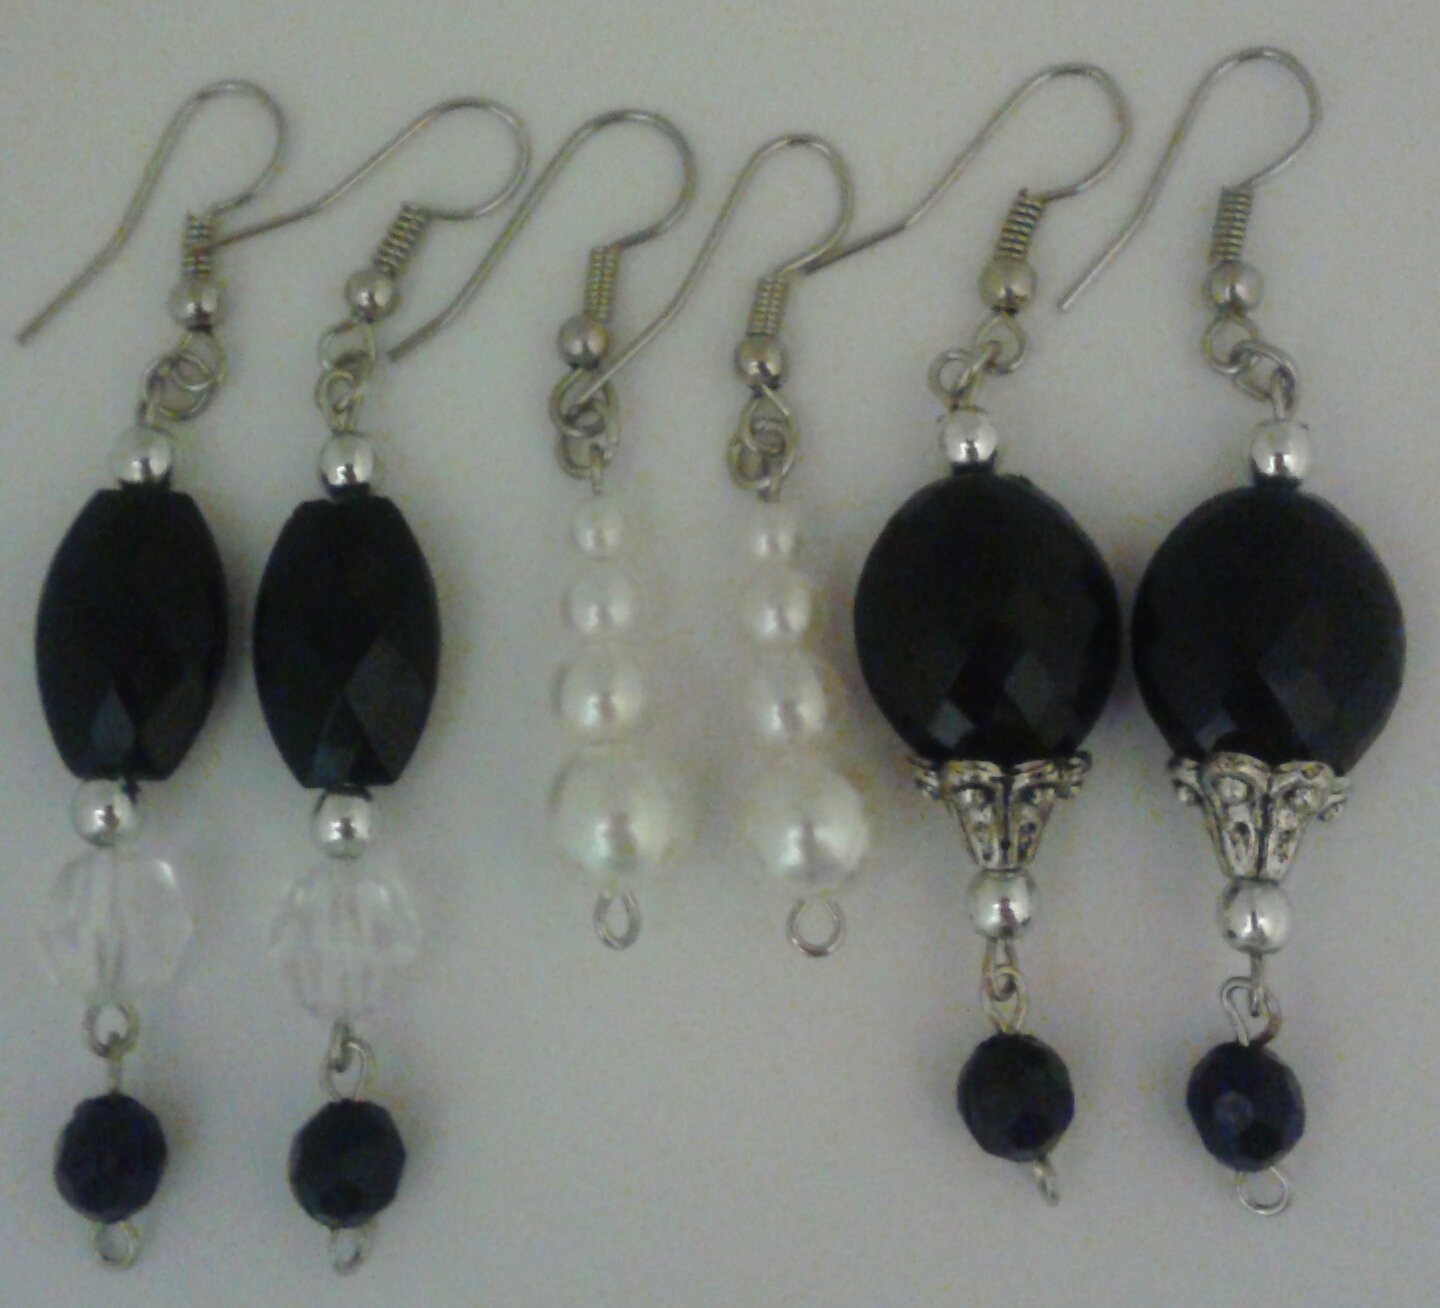 7 pc Black Sparkling Faceted Beading Designs with Simulted Pearl Earring Dangles